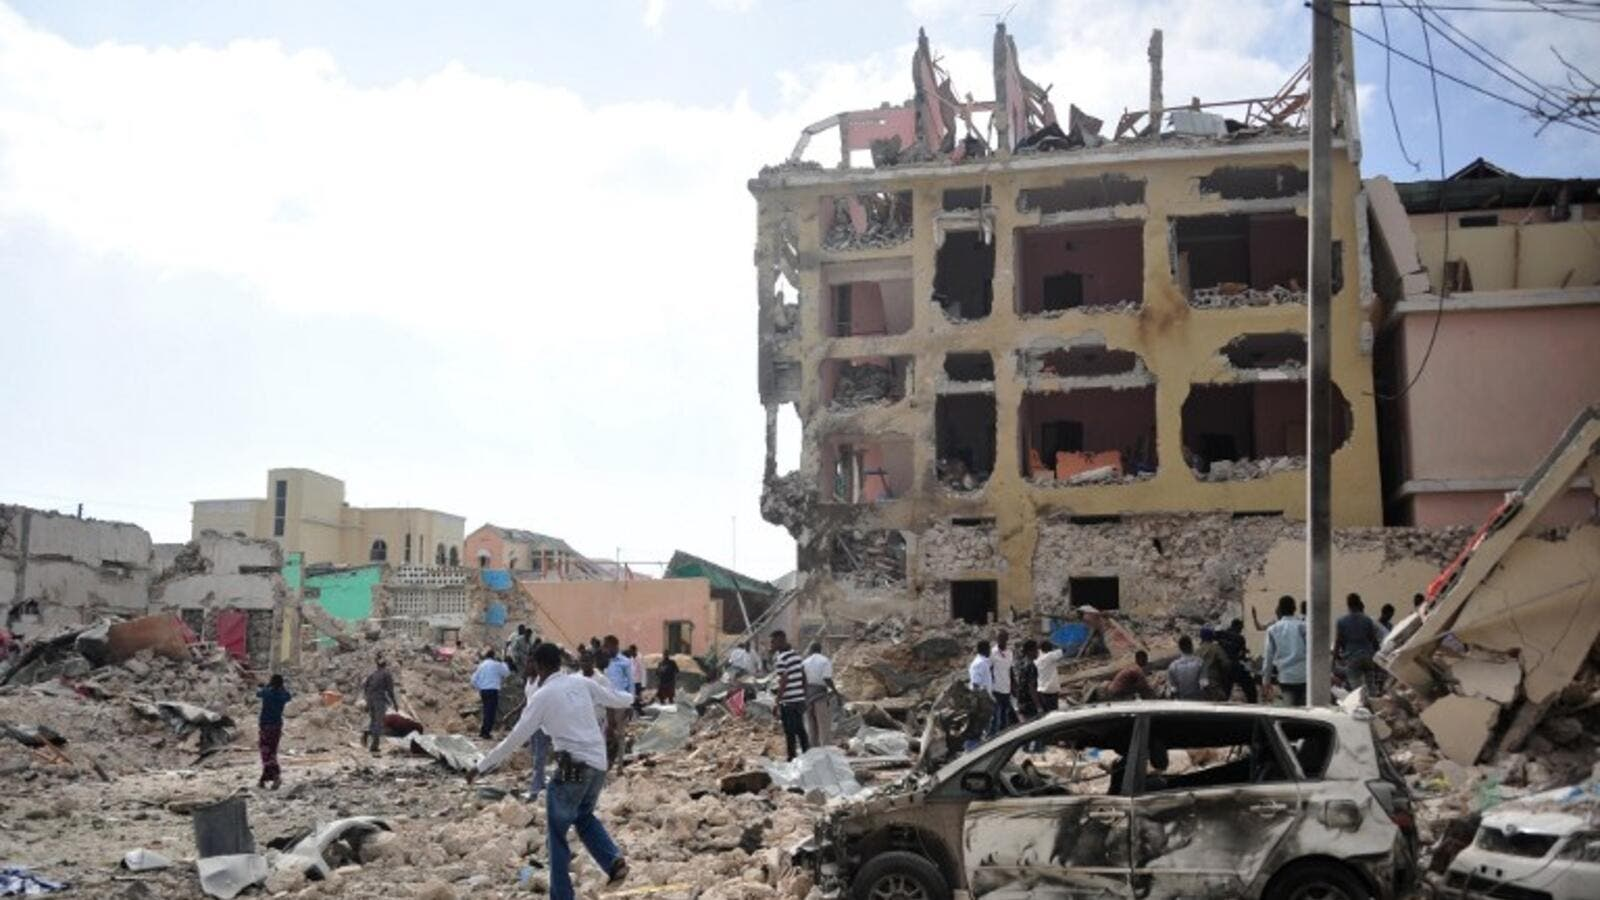 People react and walk among rubbles following an attack outside an hotel on January 25, 2017, in Mogadishu. At least seven people were killed after two car bombs exploded outside a popular Mogadishu hotel and gunmen forced their way inside the building and opened fire, police said. (AFP/Mohamed Abdiwahab)